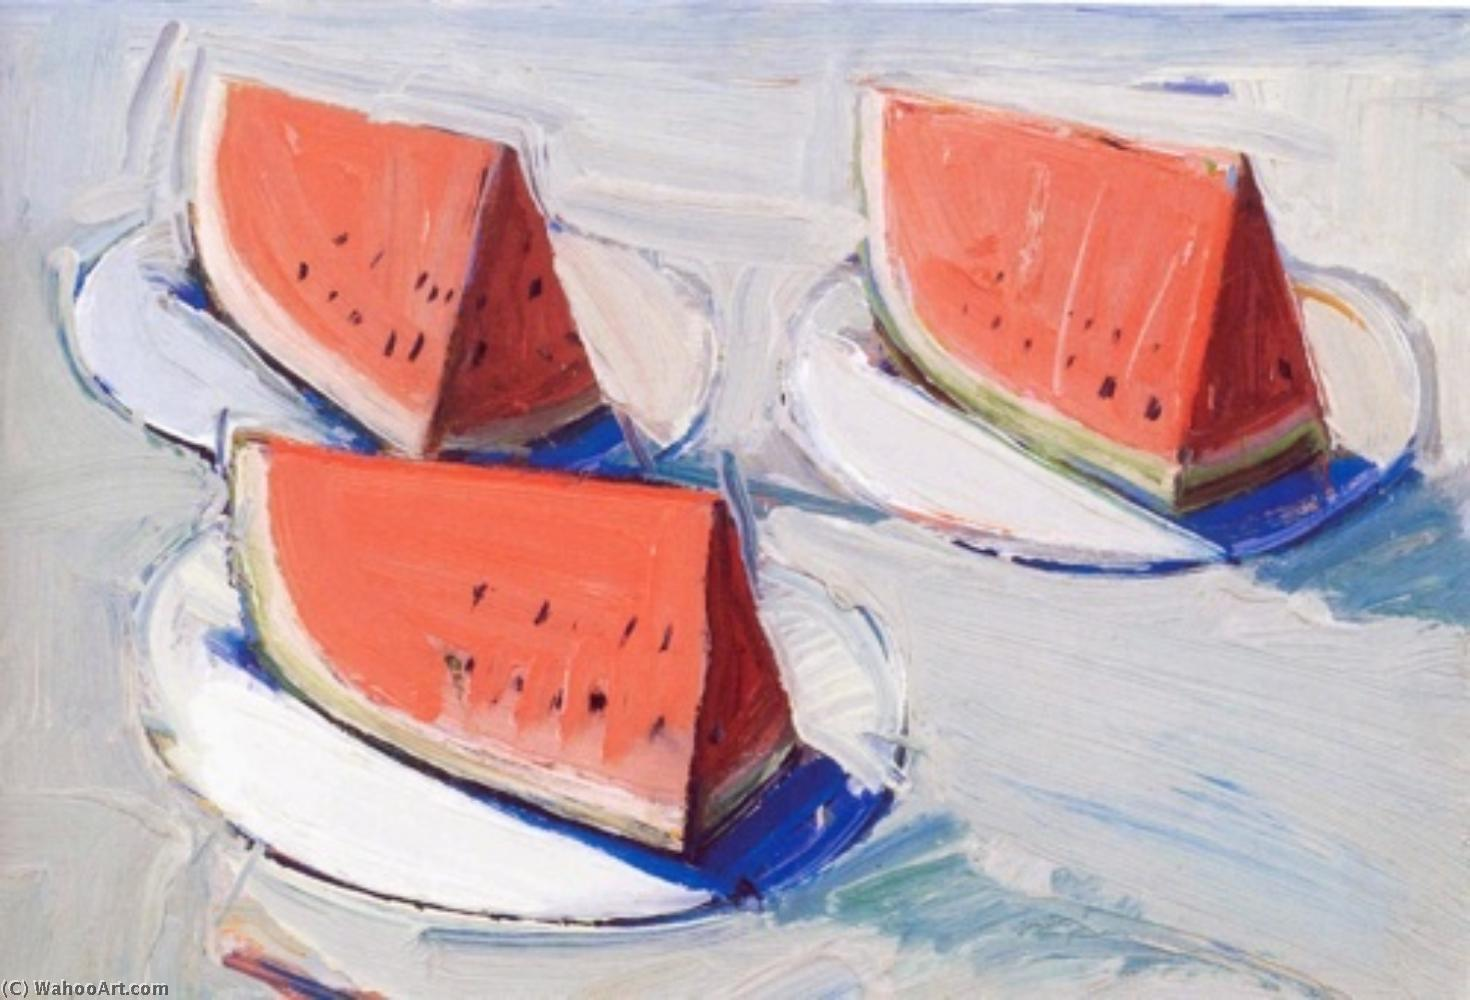 famous painting Watermelon large of Wayne Thiebaud